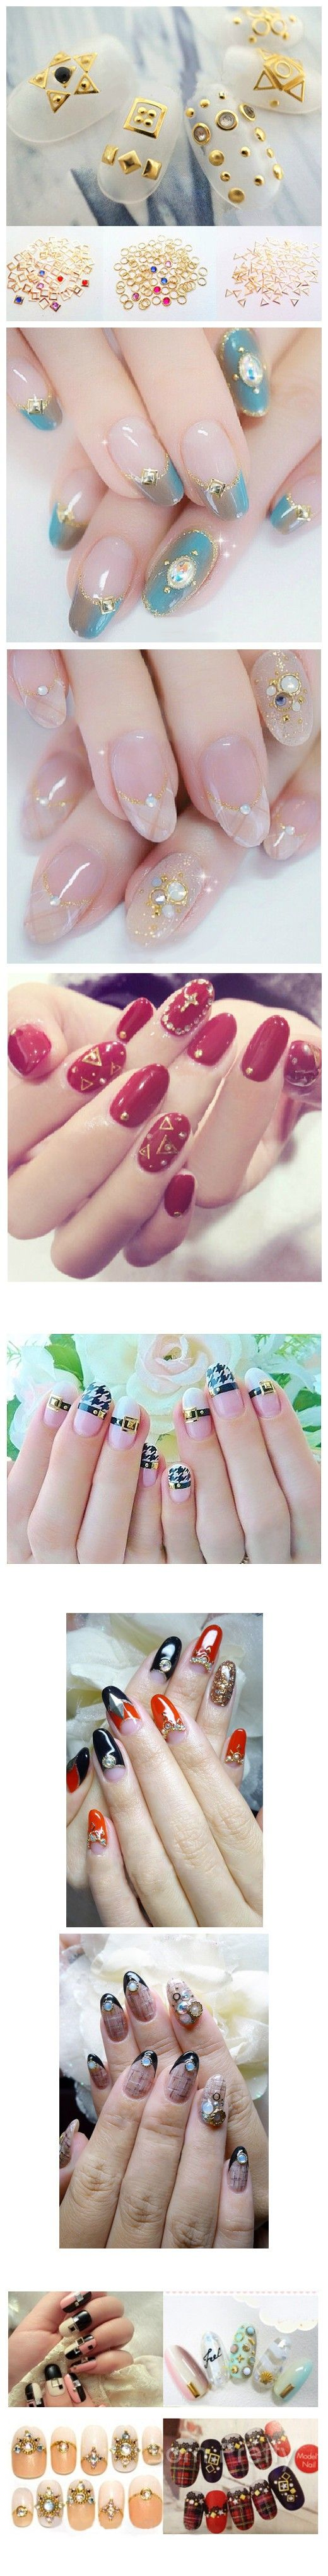 $2.79 10Pcs/set Mini Square Round Triangle Design Nail Studs Fashion 3D Nail Art Decoration - BornPrettyStore.com